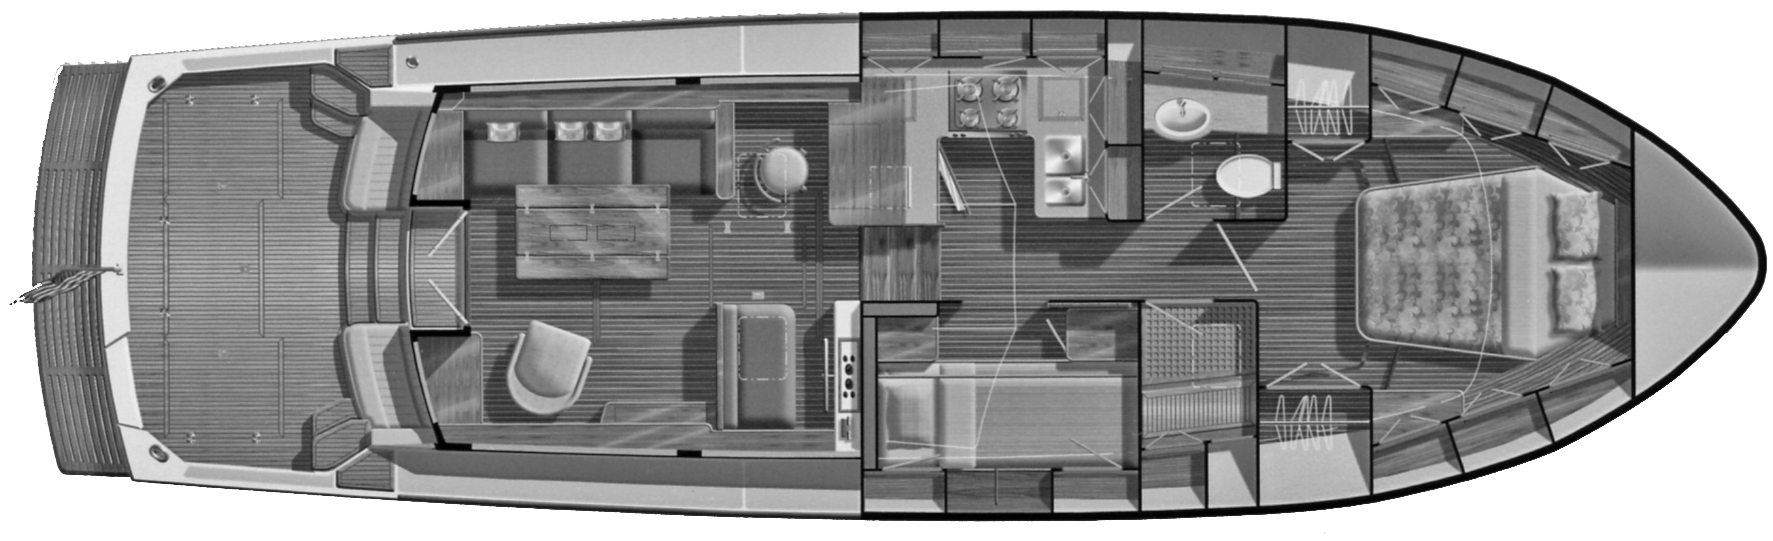 Eastbay 43 SX-HX Floor Plan 2